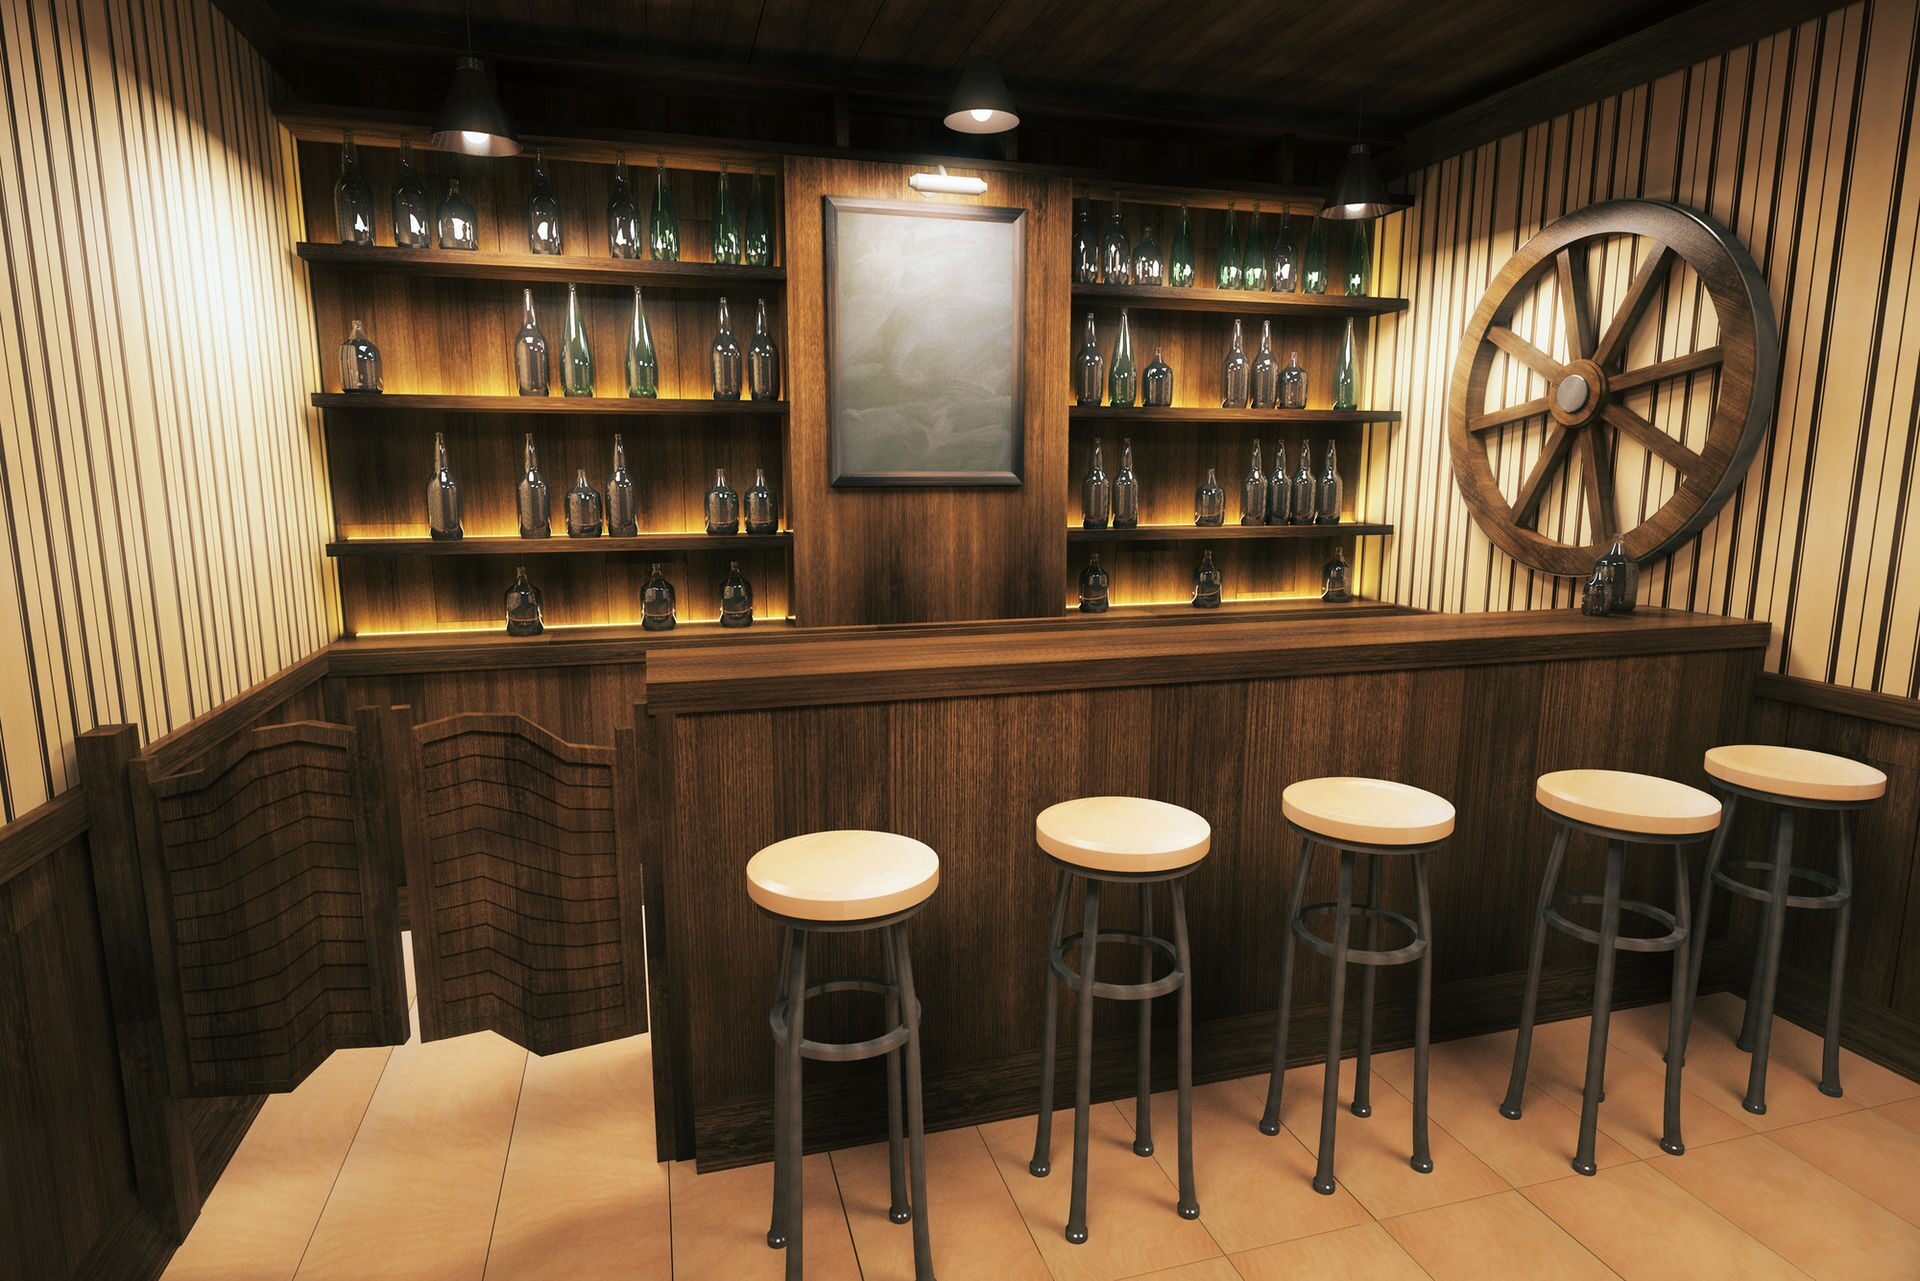 saloon-bar-counter